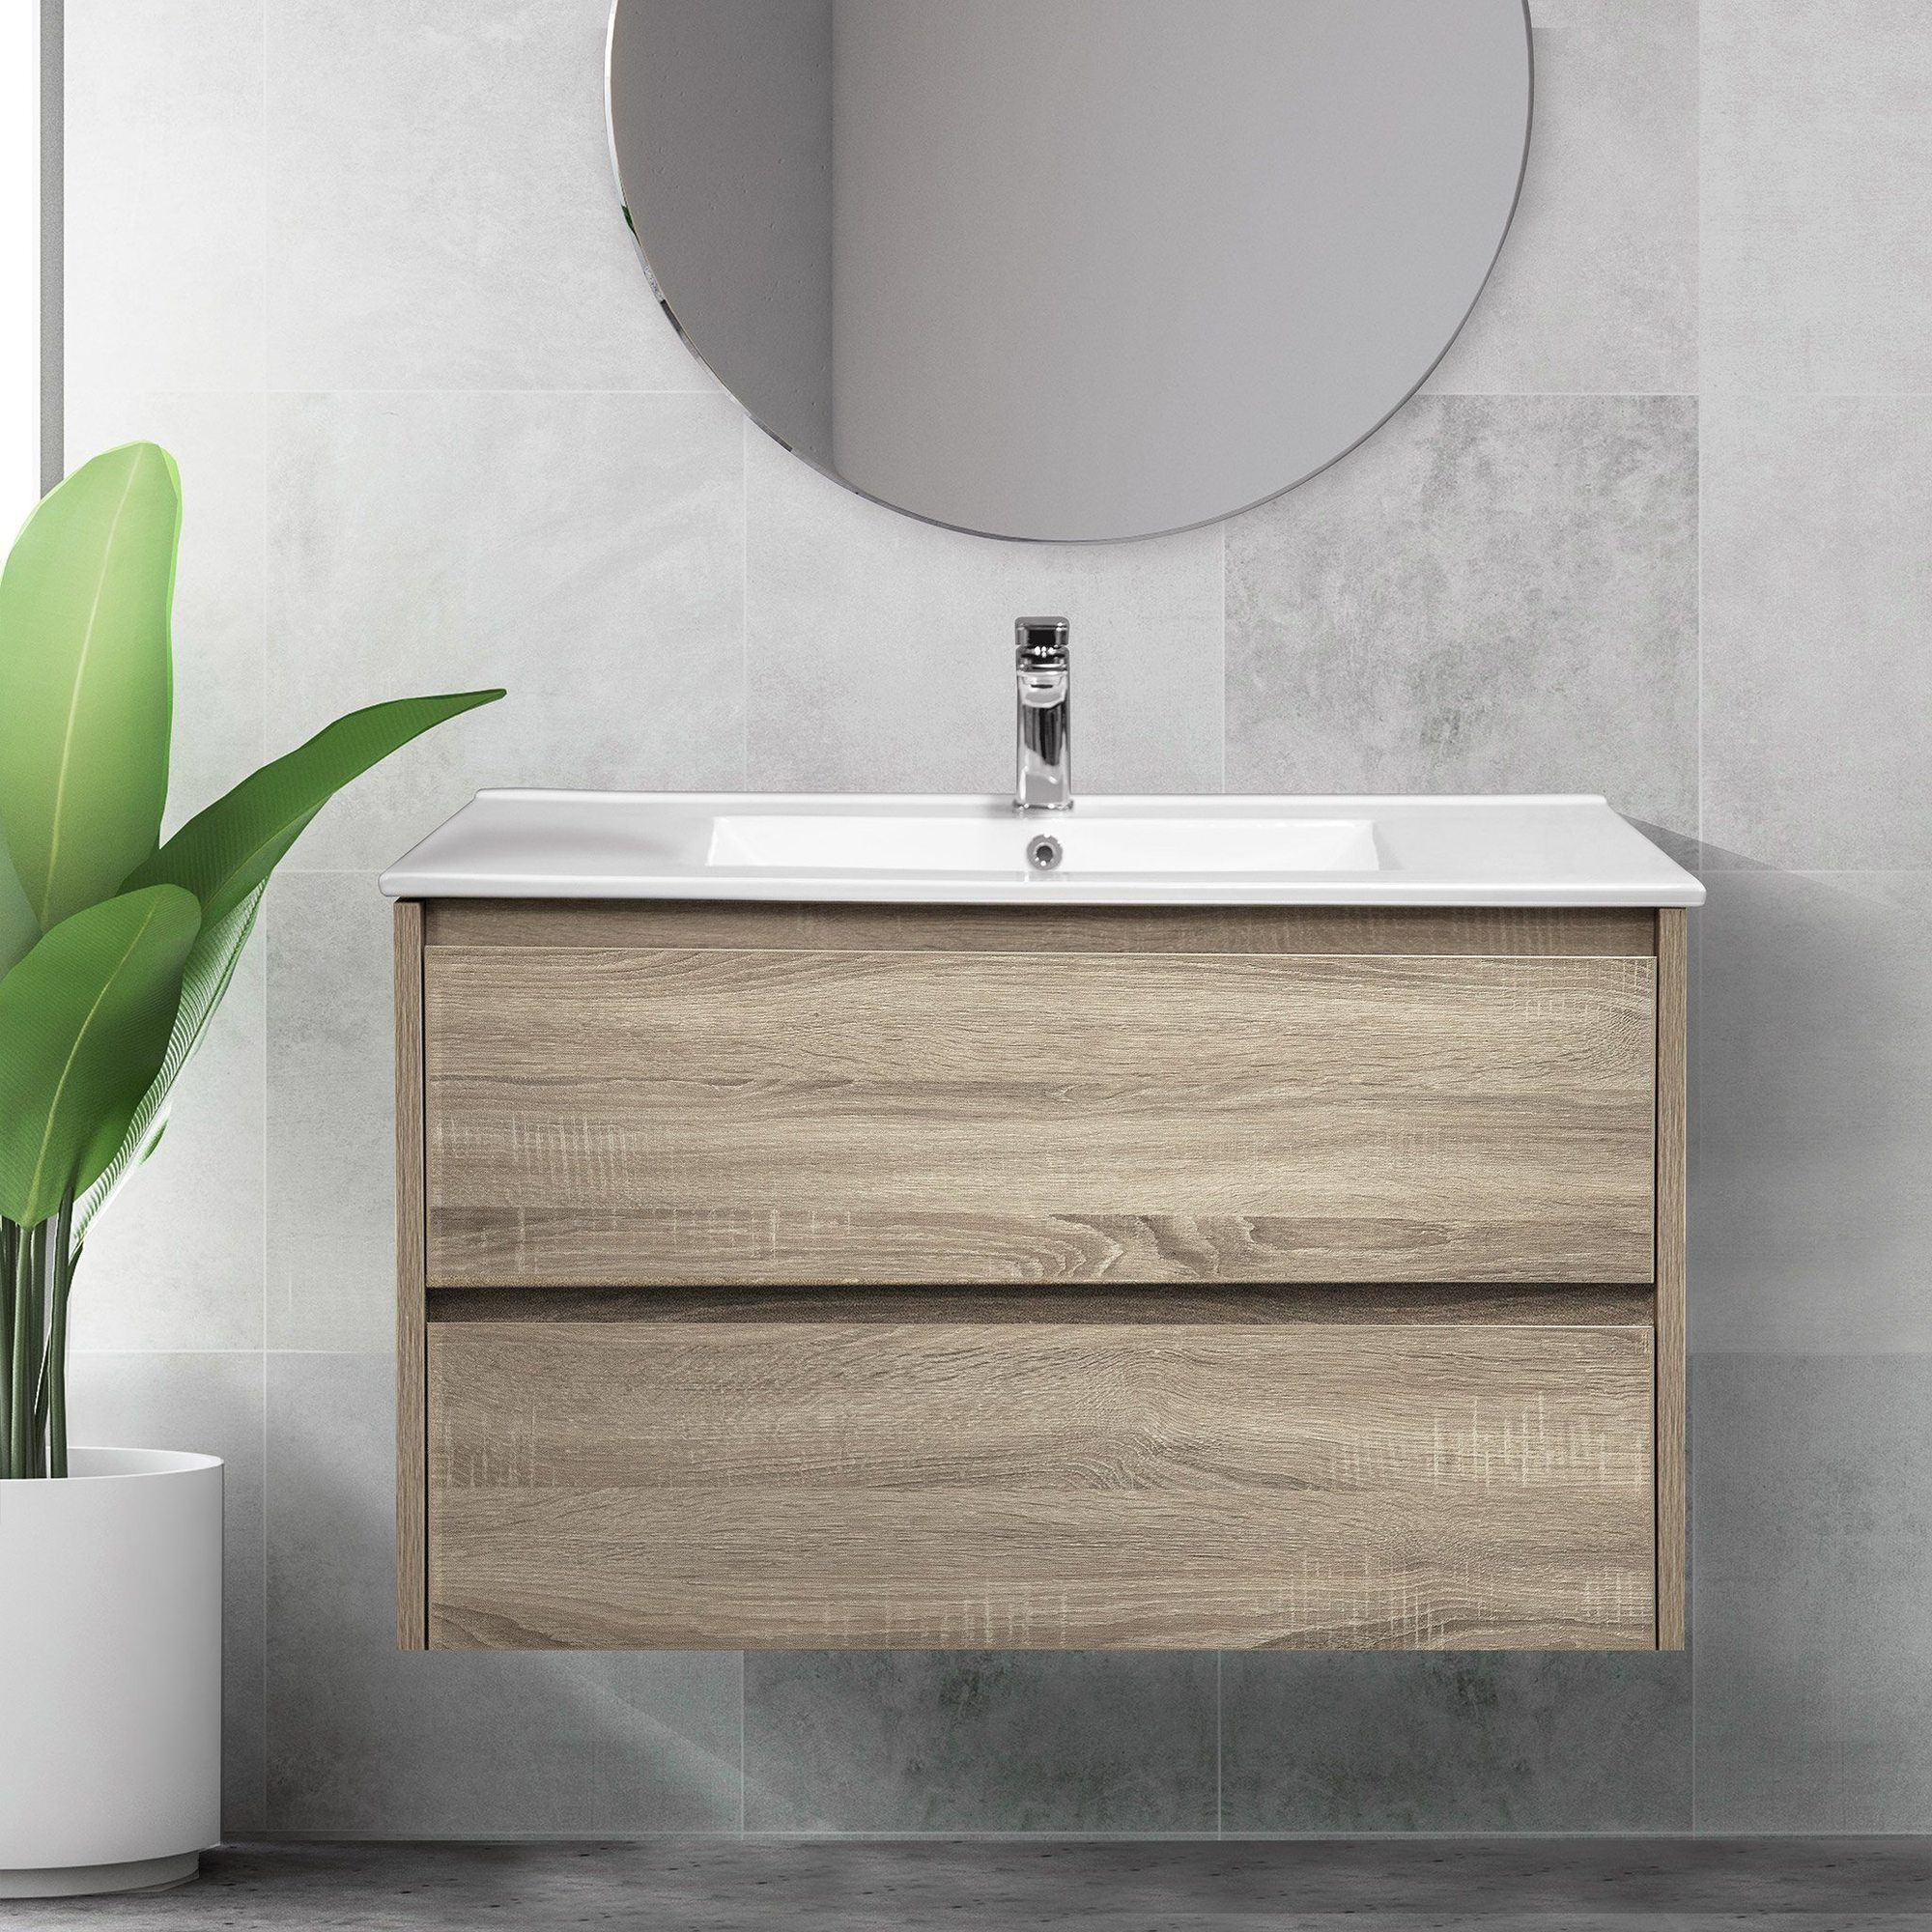 900mm Timber Look Wall Hung Bathroom Vanity Cabinet Melbourne Arova Kitchens In 2020 Wall Hung Bathroom Vanities Wall Hung Vanity Bathroom Vanity Cabinets